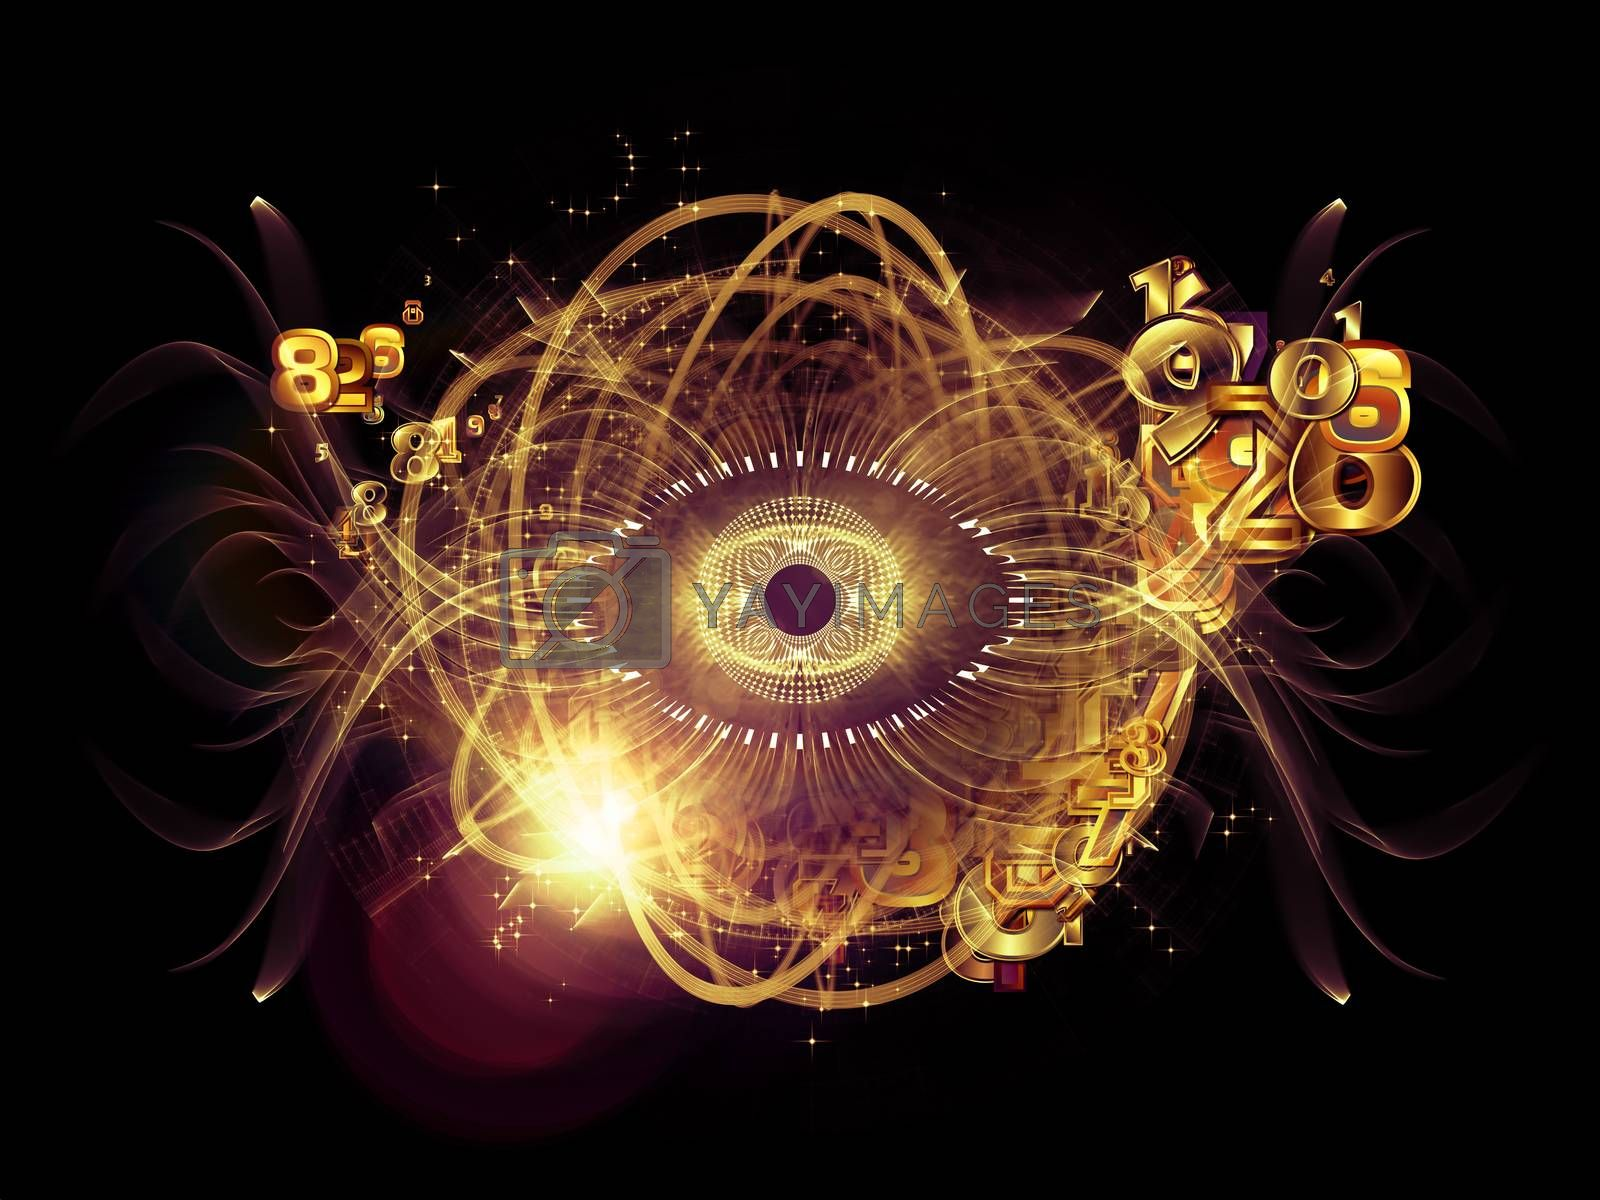 Eye Particle series. Design composed of eye shape, numbers and fractal elements as a metaphor on the subject of spirituality, science and  technology